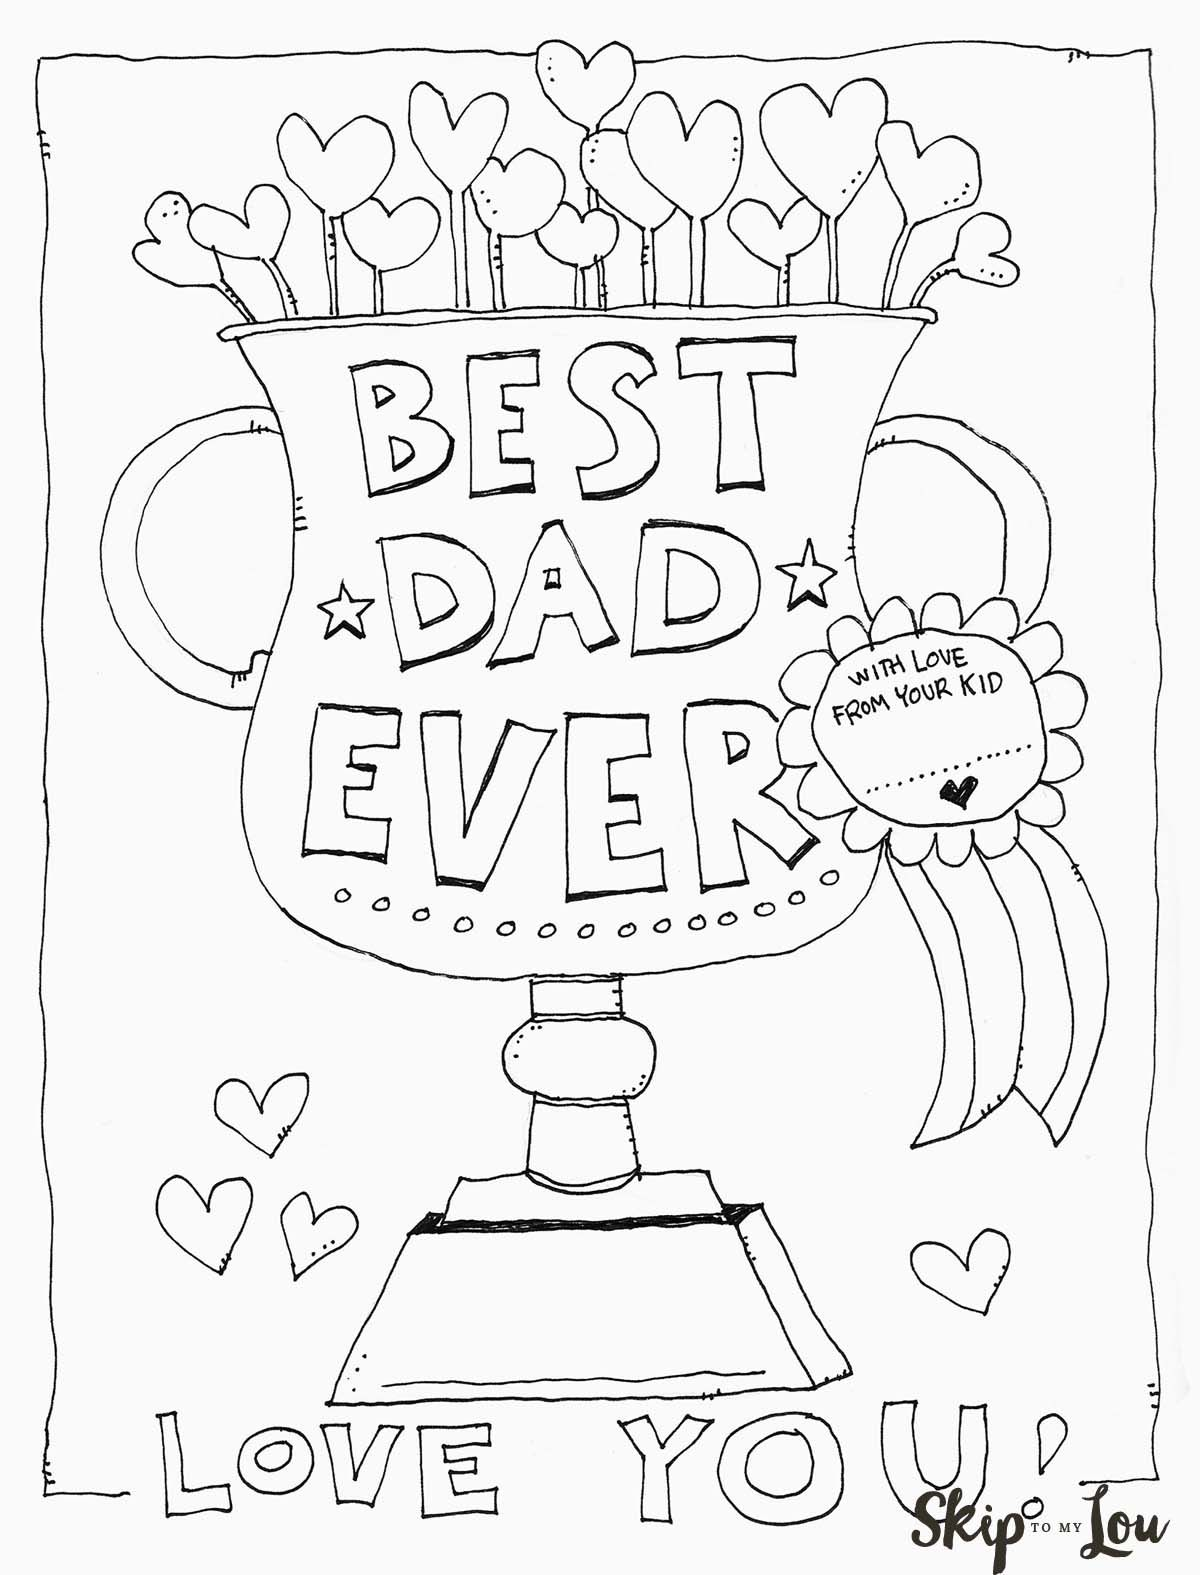 1200x1575 Dad Coloring Page For The Best Dad Free Printable, Dads And Free